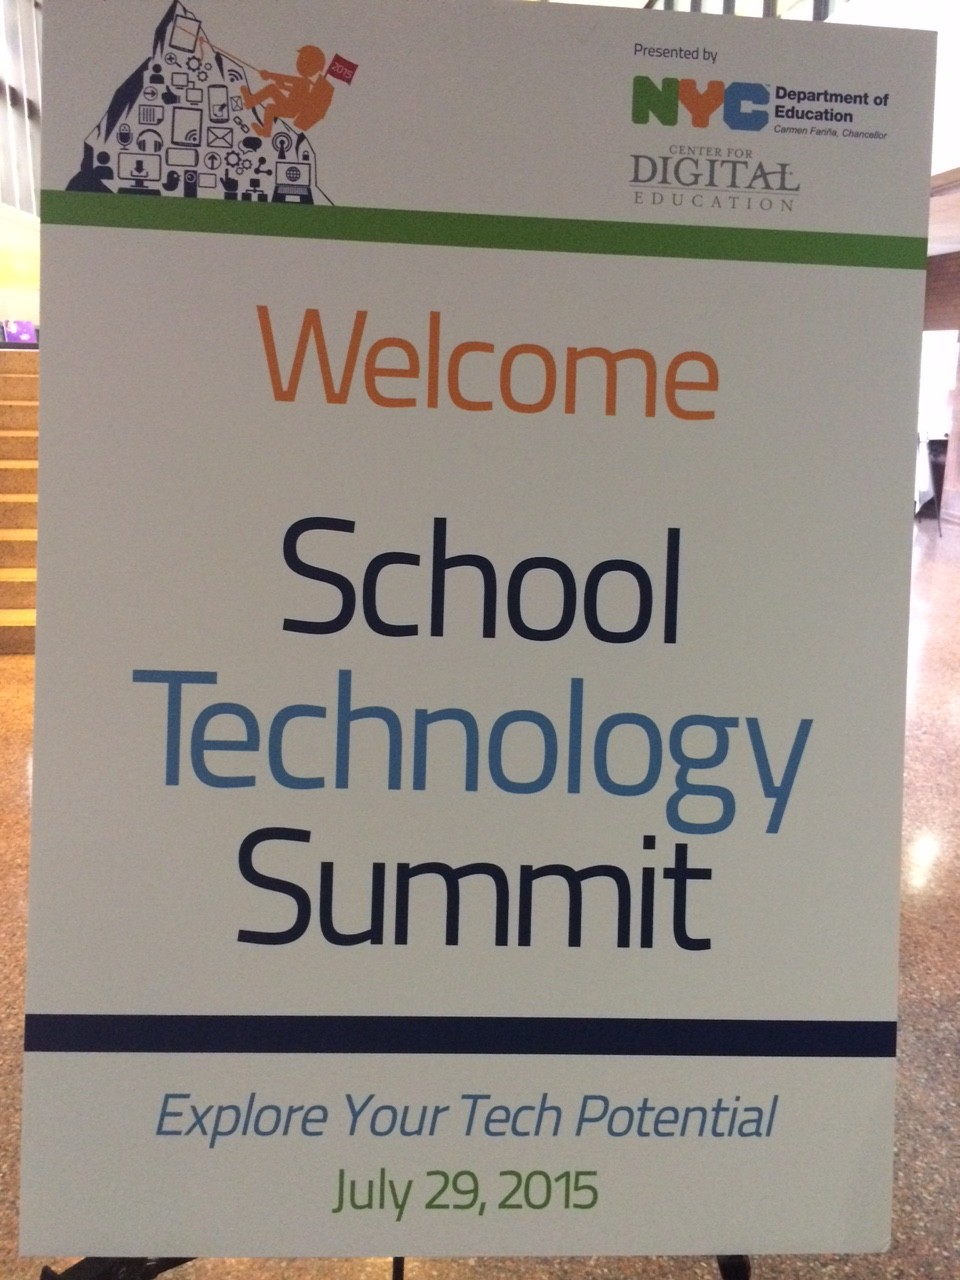 NYC School Tech Summit: Green Screens, Digital Tools, and, Above All, Innovation